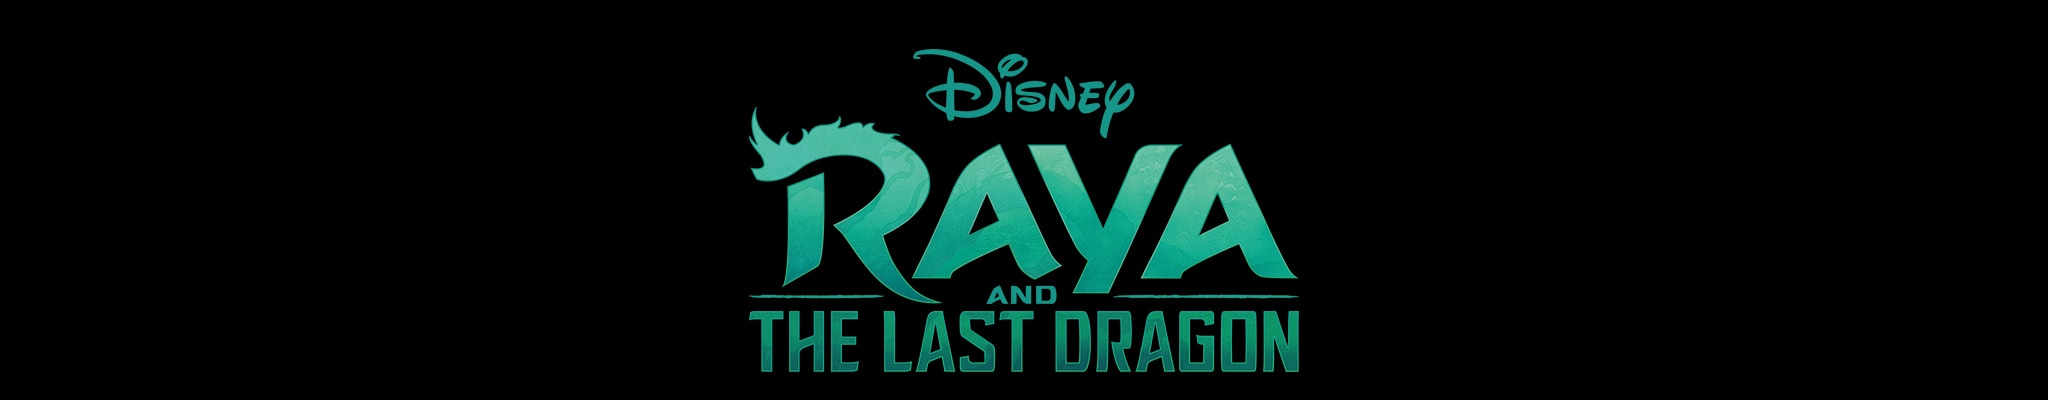 Disney | Raya and The Last Dragon